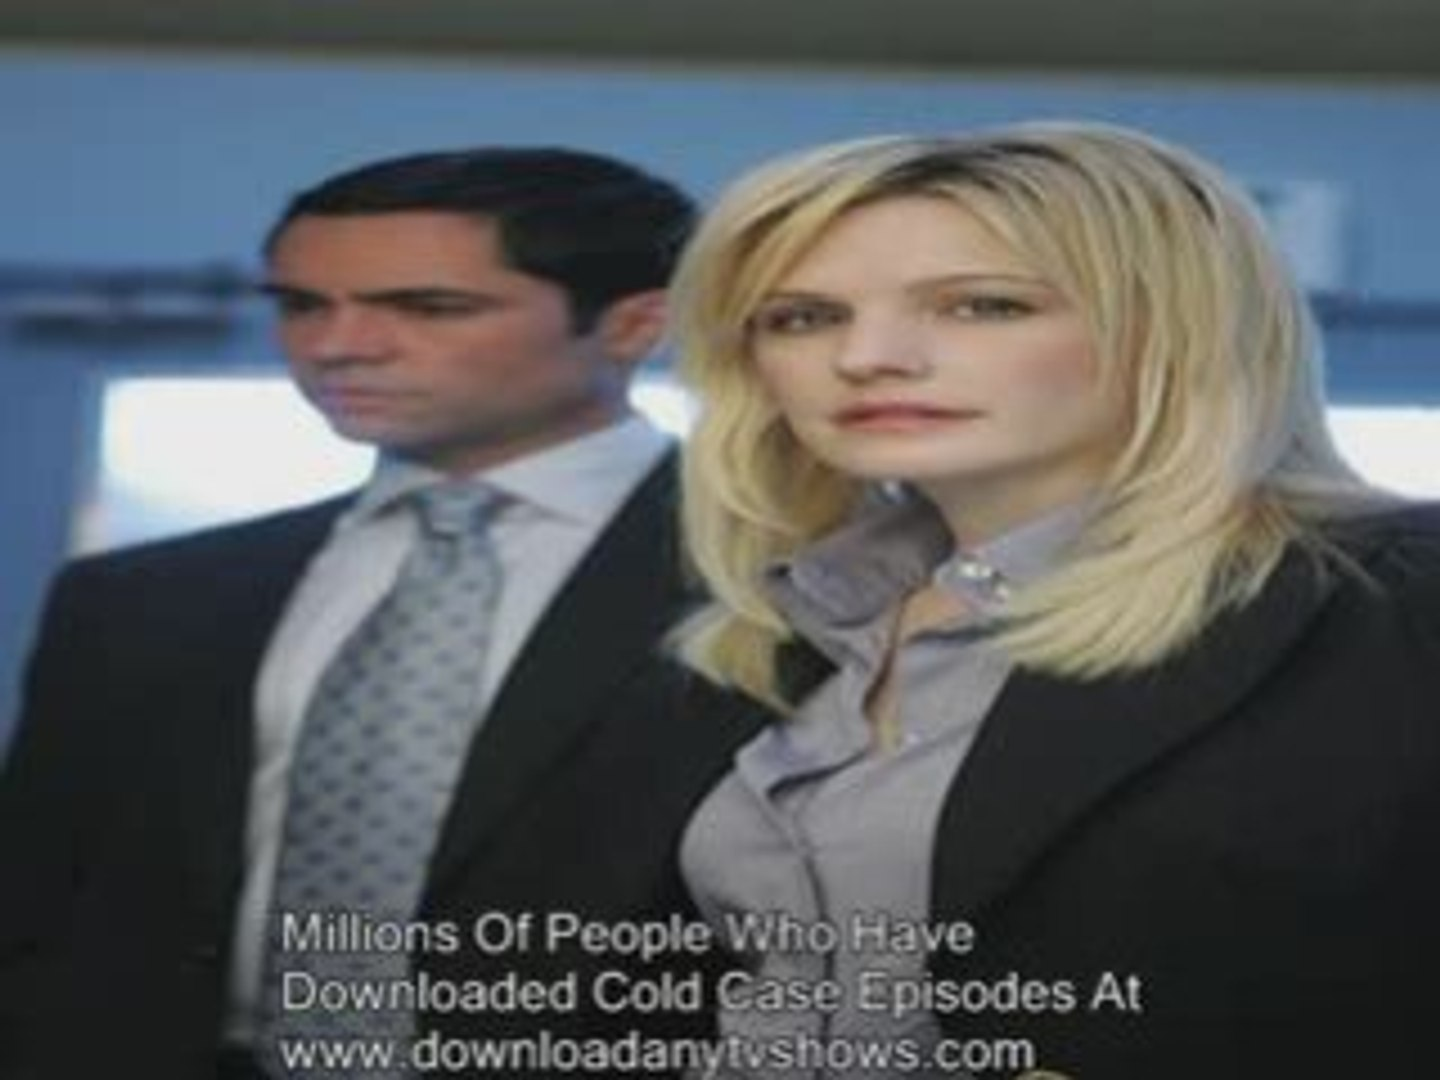 Where To Download Full Cold Case Episodes - video dailymotion